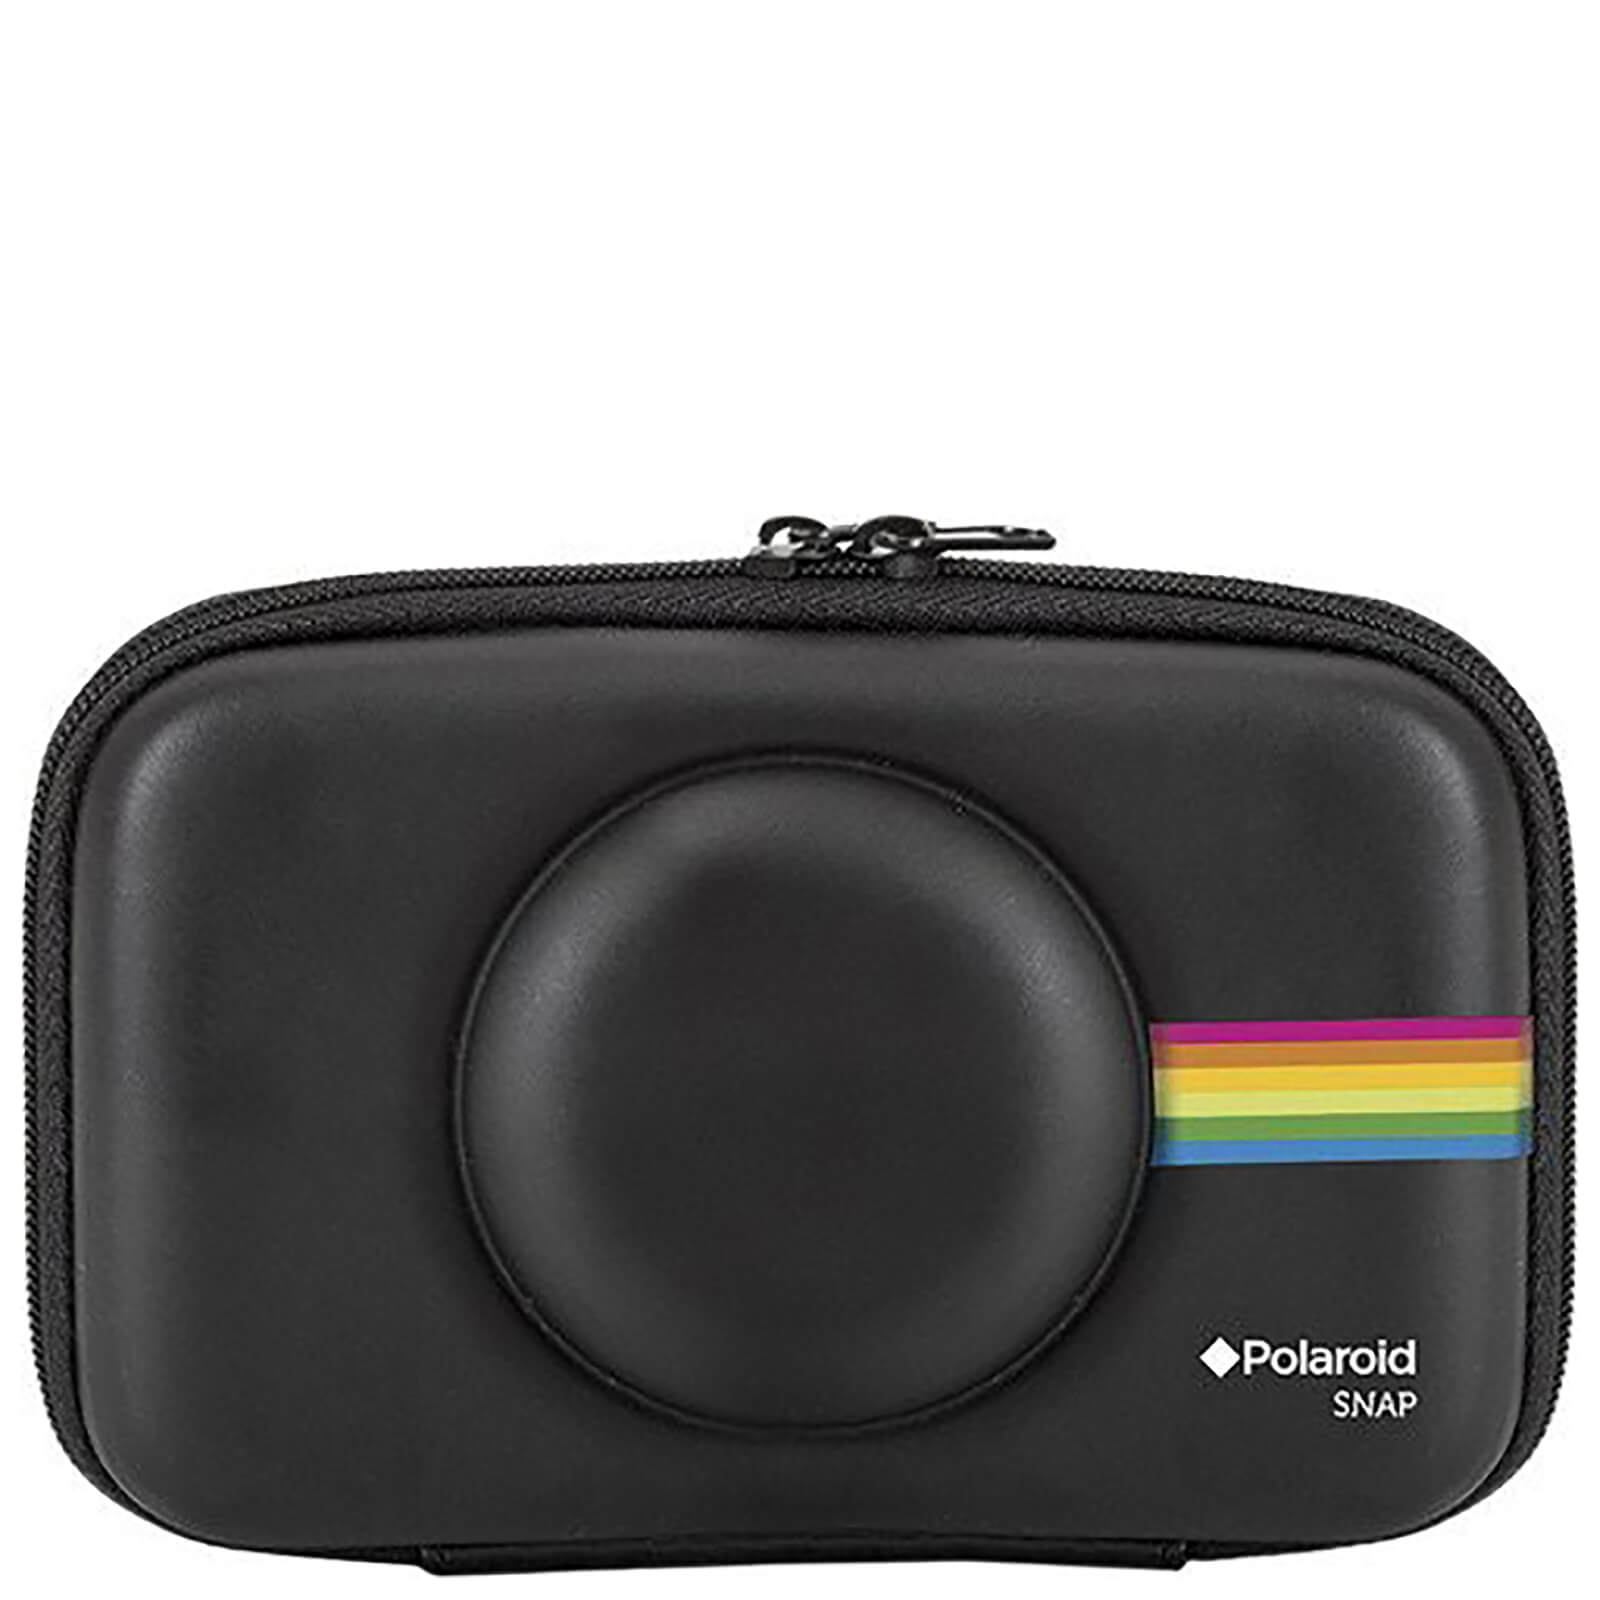 Polaroid EVA Case (For Snap Instant Digital Print Camera) - Black